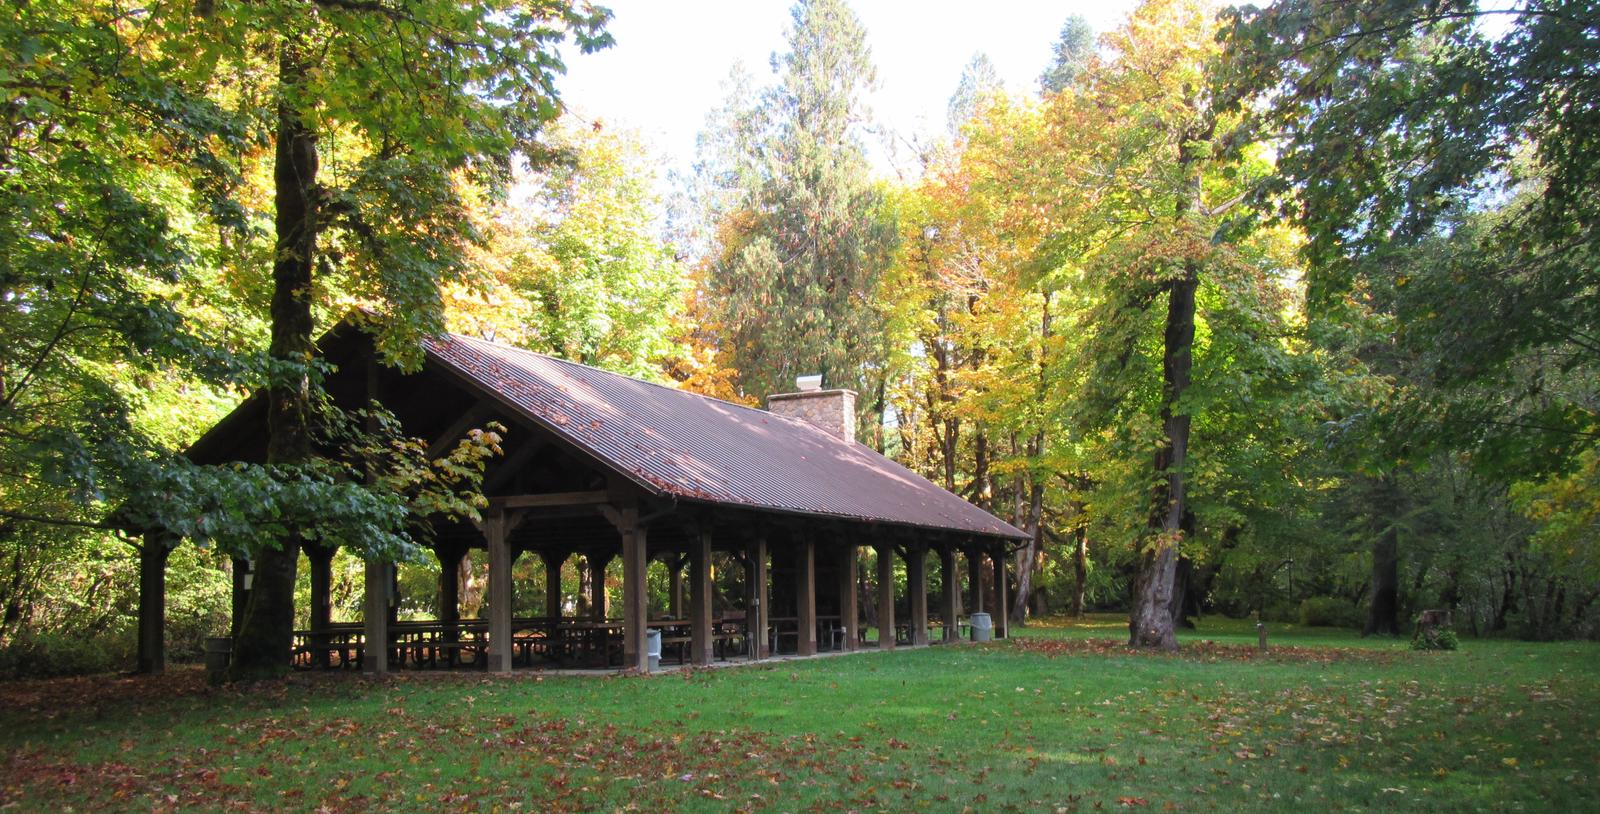 Large pavilion with surrounding open space